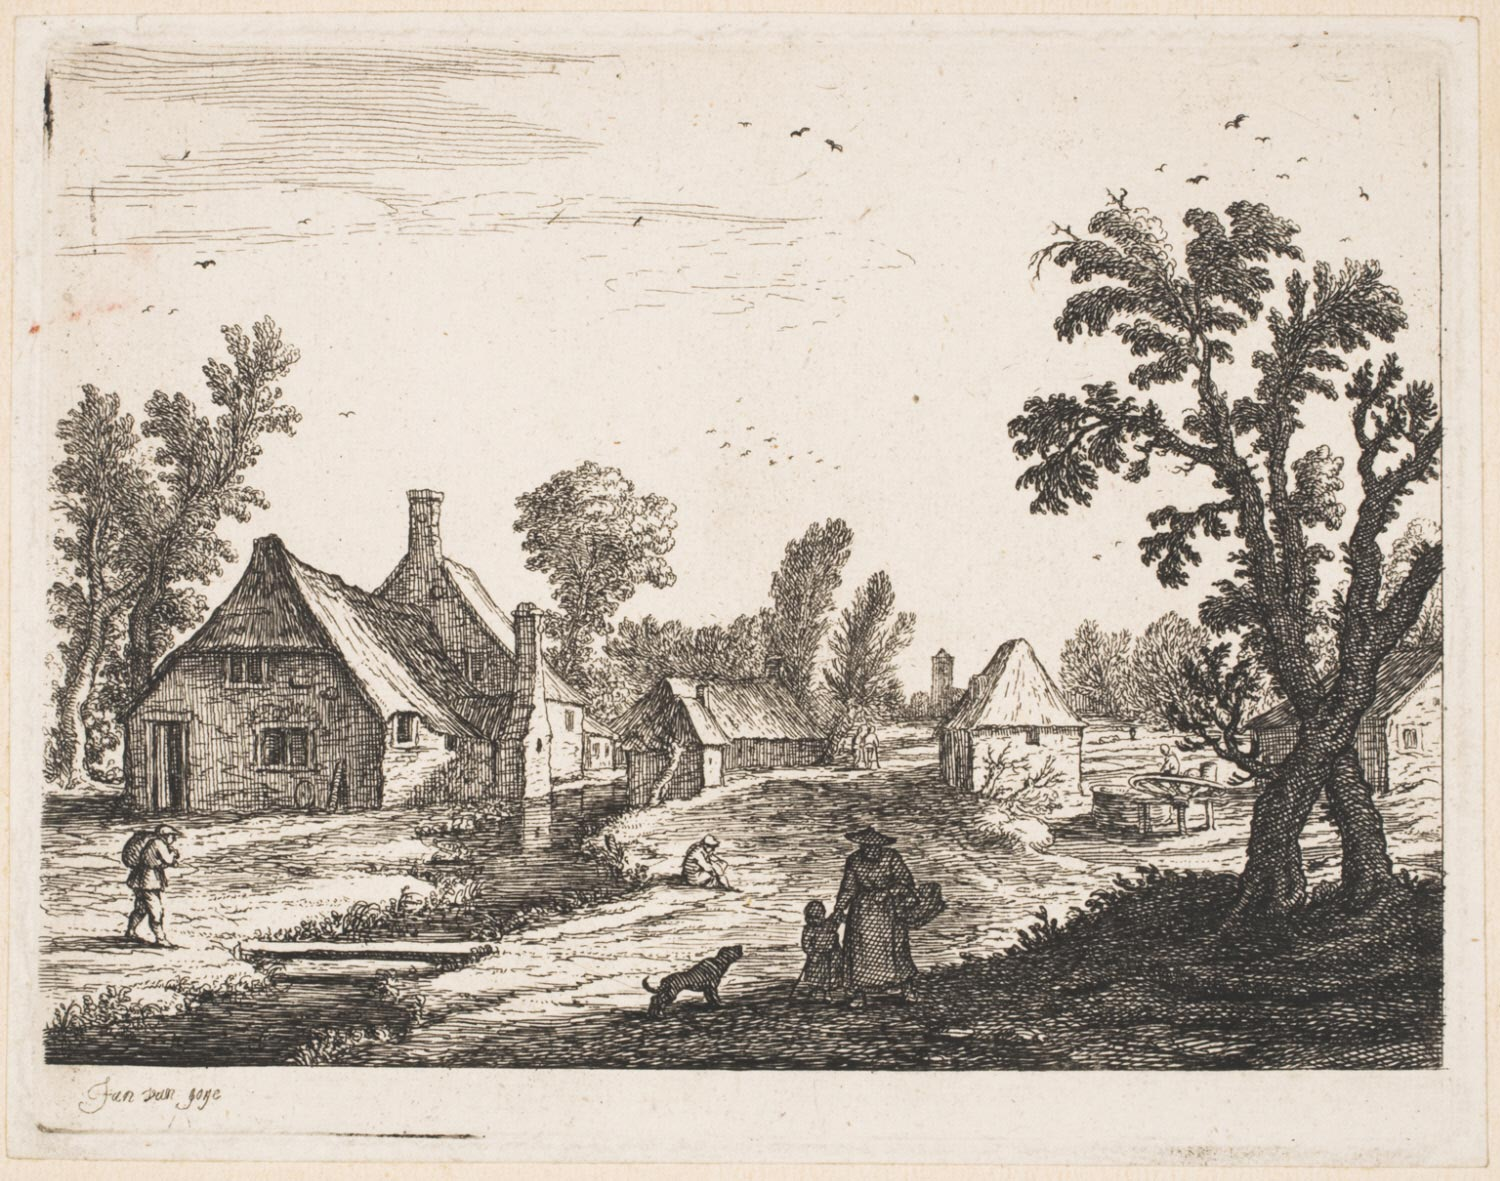 The Village on the Bank of a Brook